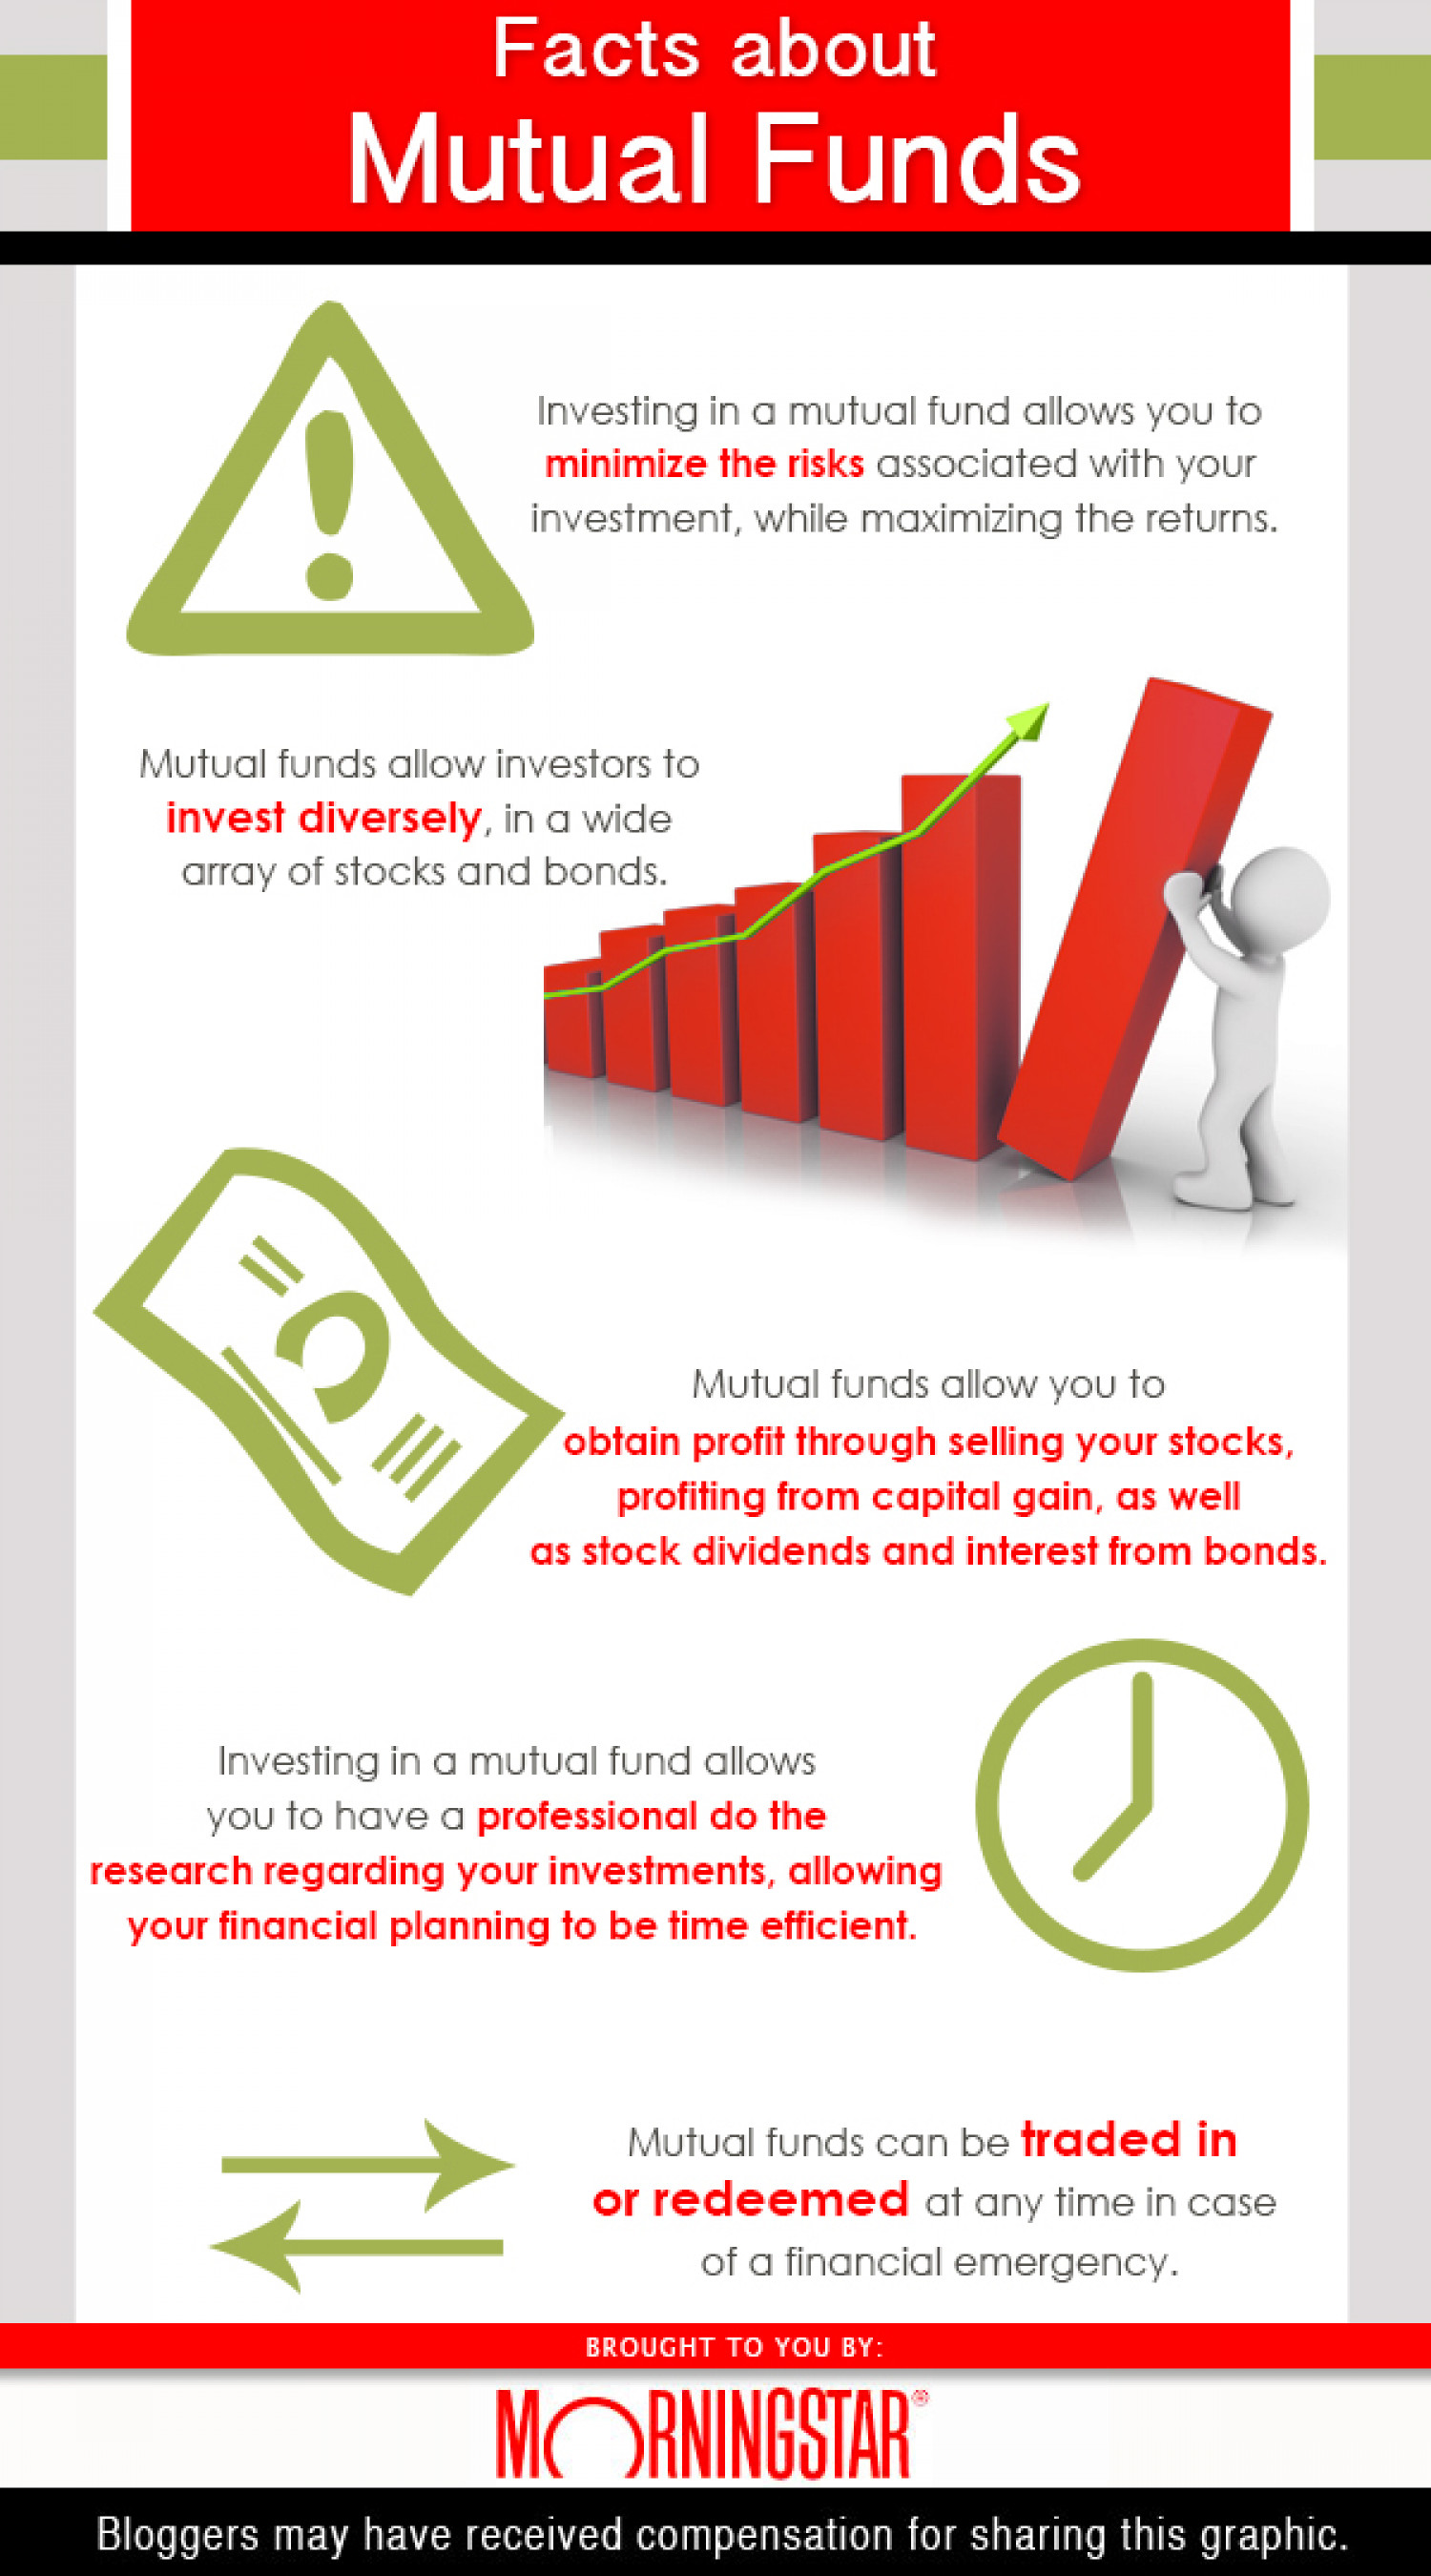 Facts About Mutual Funds Infographic